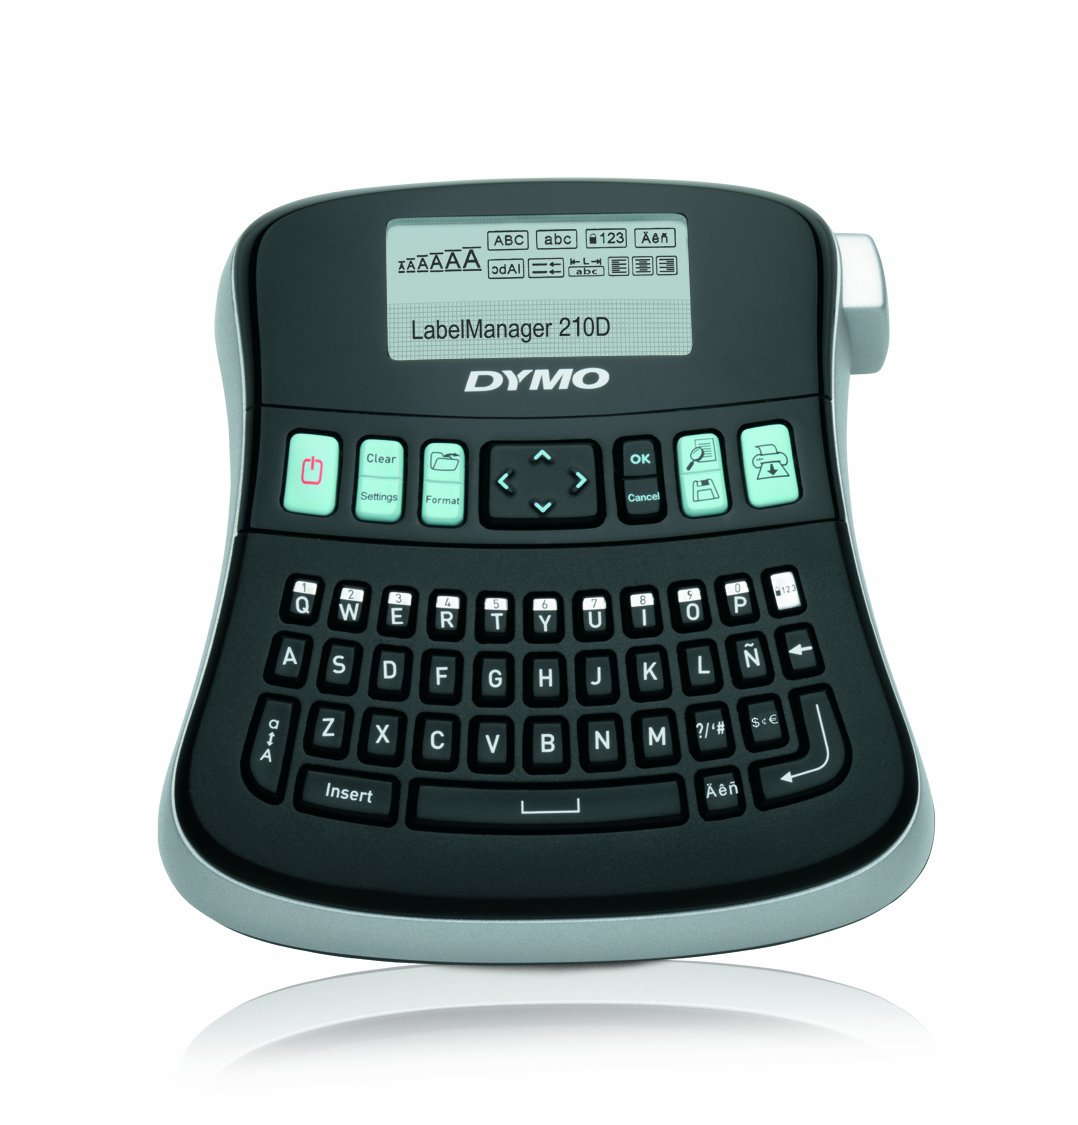 DYMO LabelManager 280 - Impresora de etiquetas (LCD, 102 mm, 205 mm, 57 mm, Windows Vista, 7, XP Mac OS X 10.5+, 89 mm) (importado) S0968960